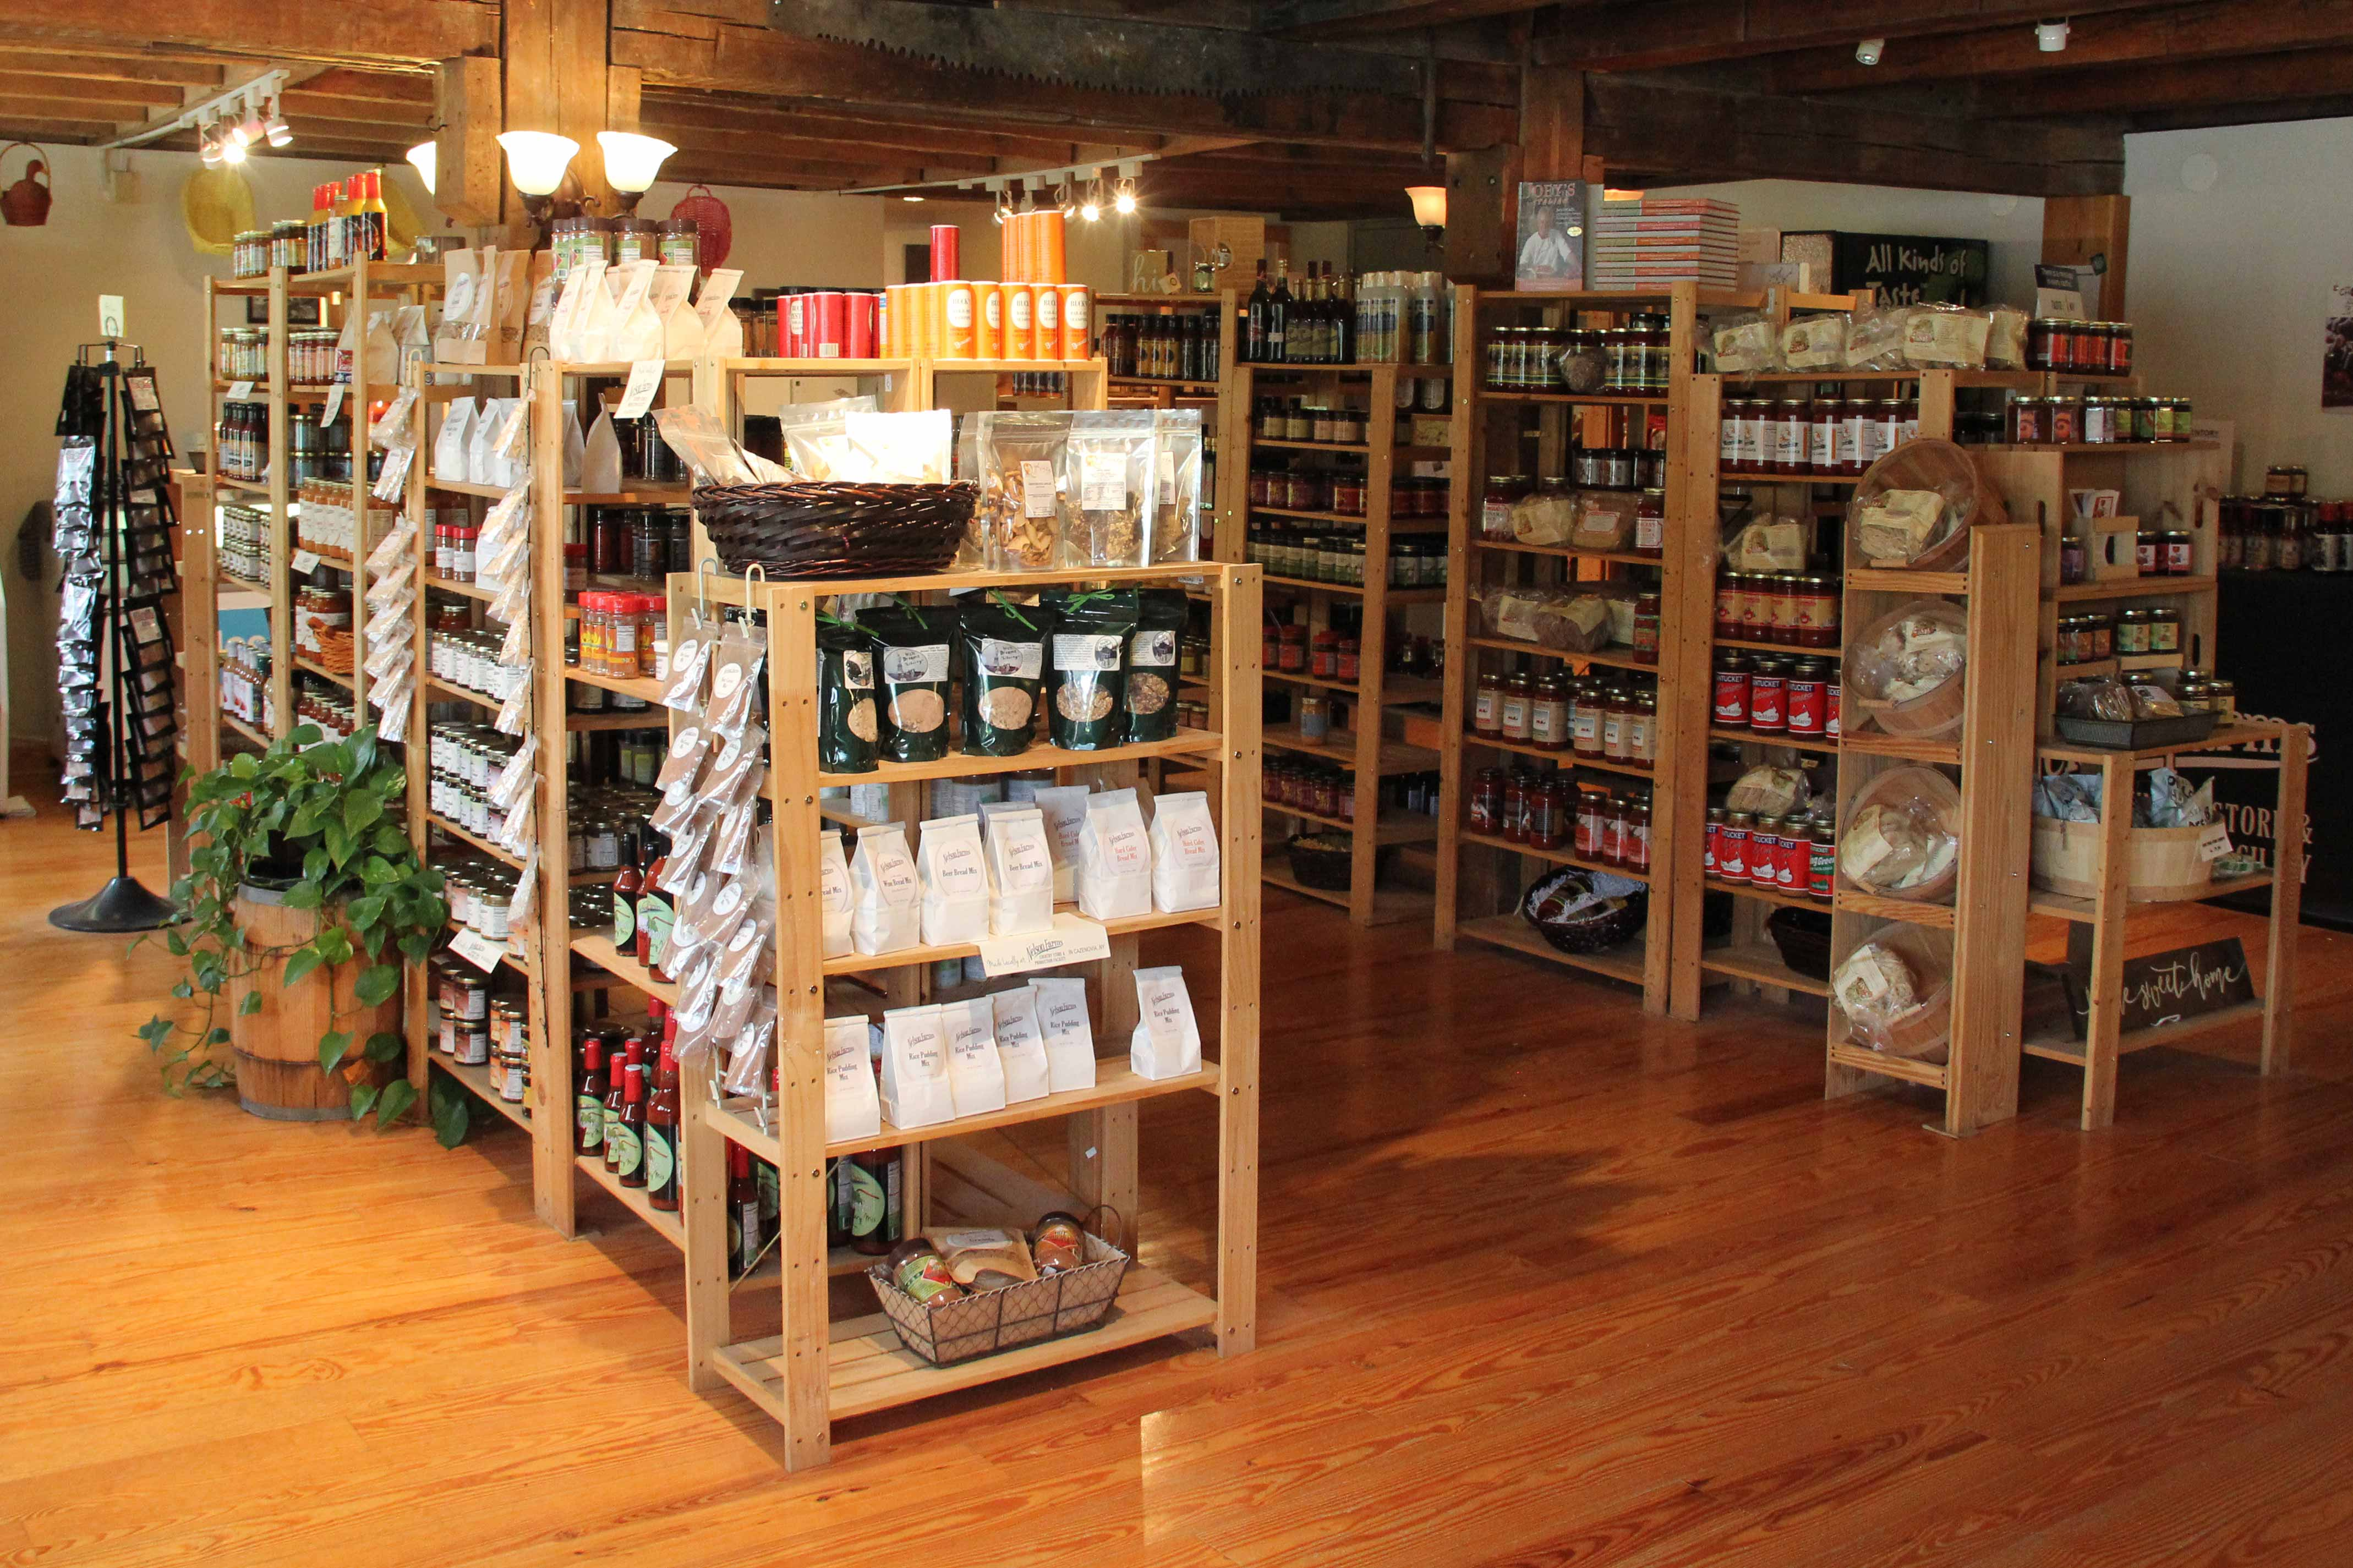 Photo of store interior. Wooden floors and wooden open shelving filled with products fill the room.